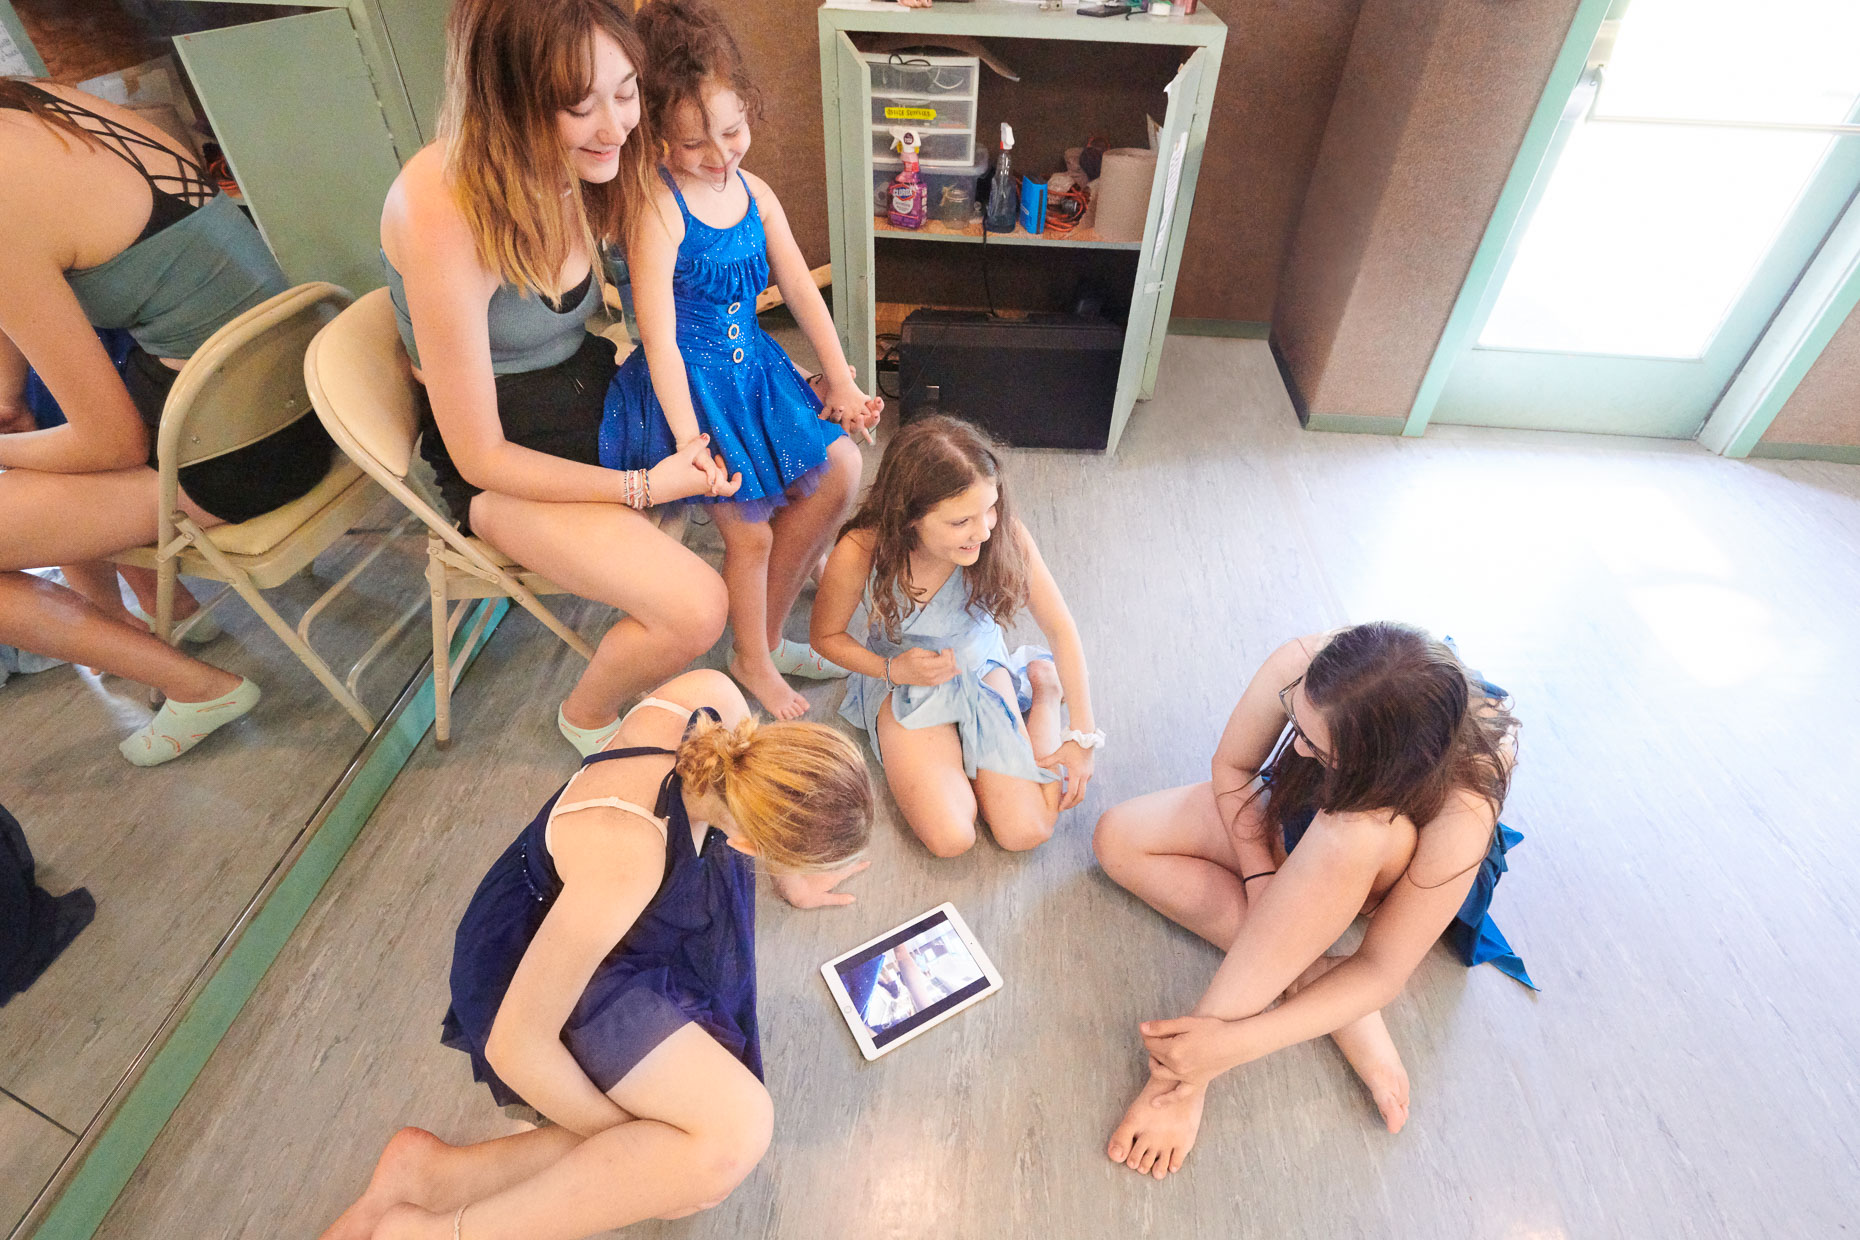 Dance Girls iPad | Appel Farm Advertising